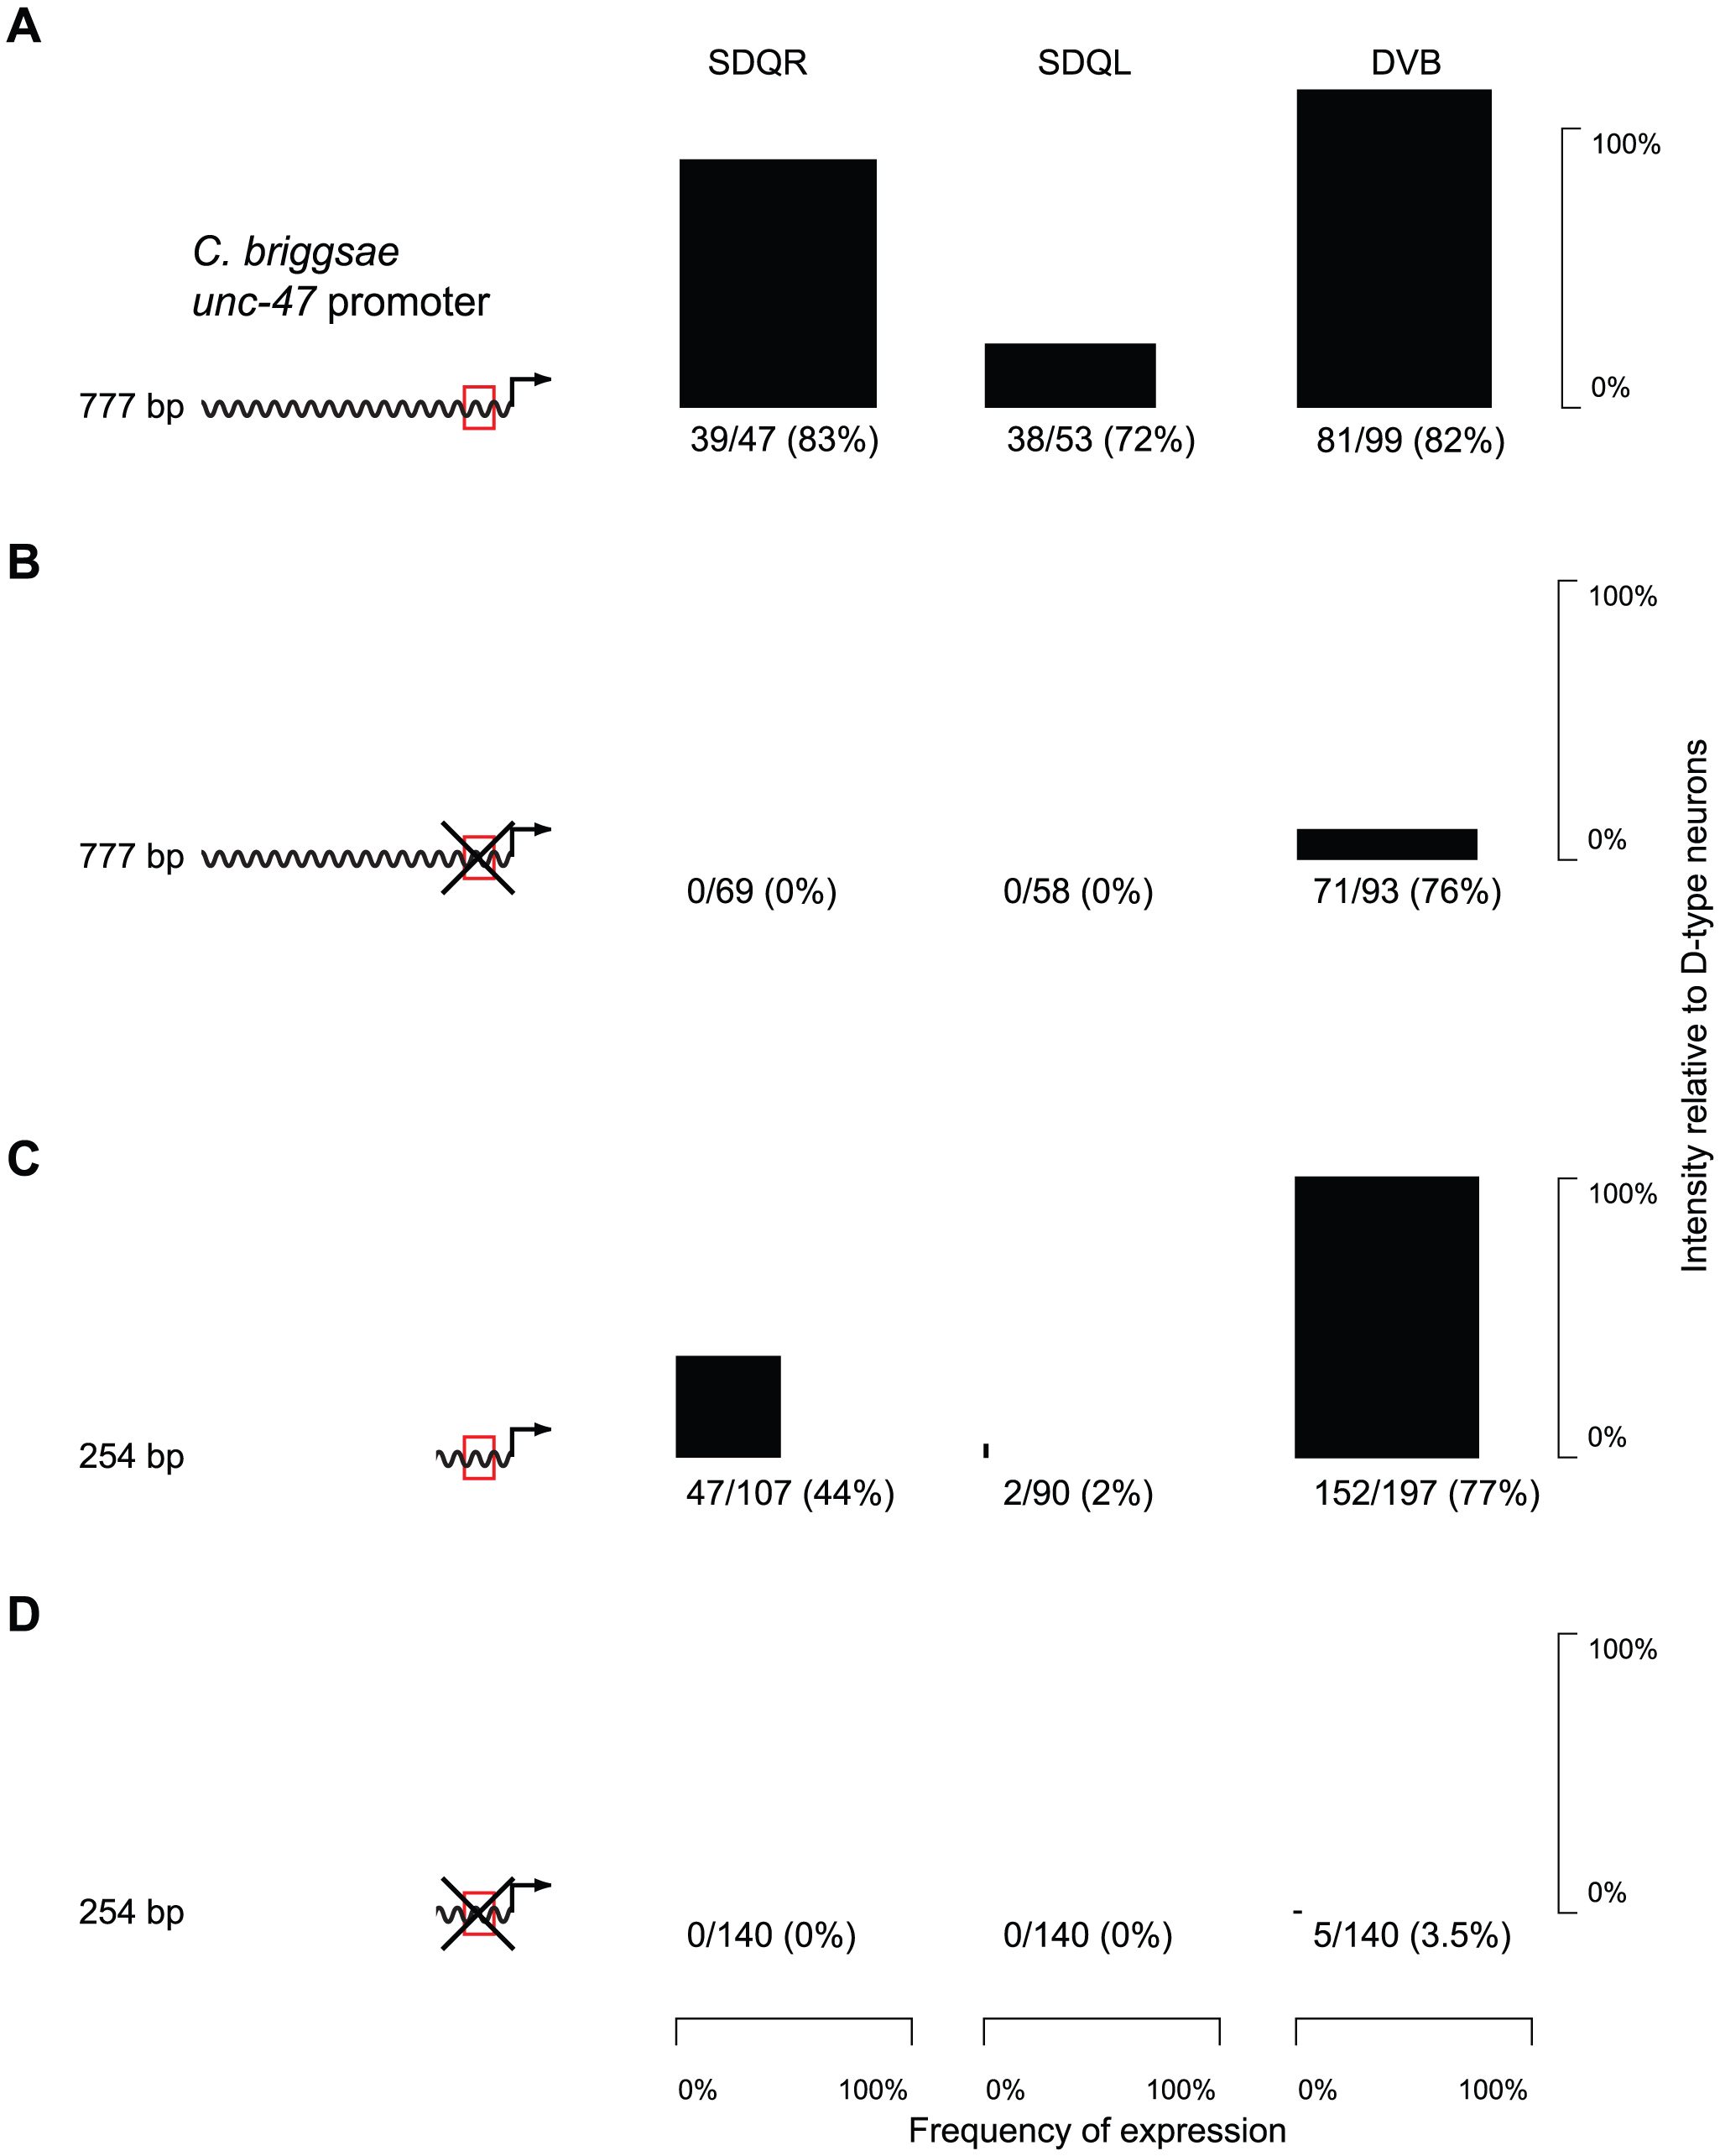 Expression in SDQR/L is mediated by a conserved motif, which also controls expression in DVB.